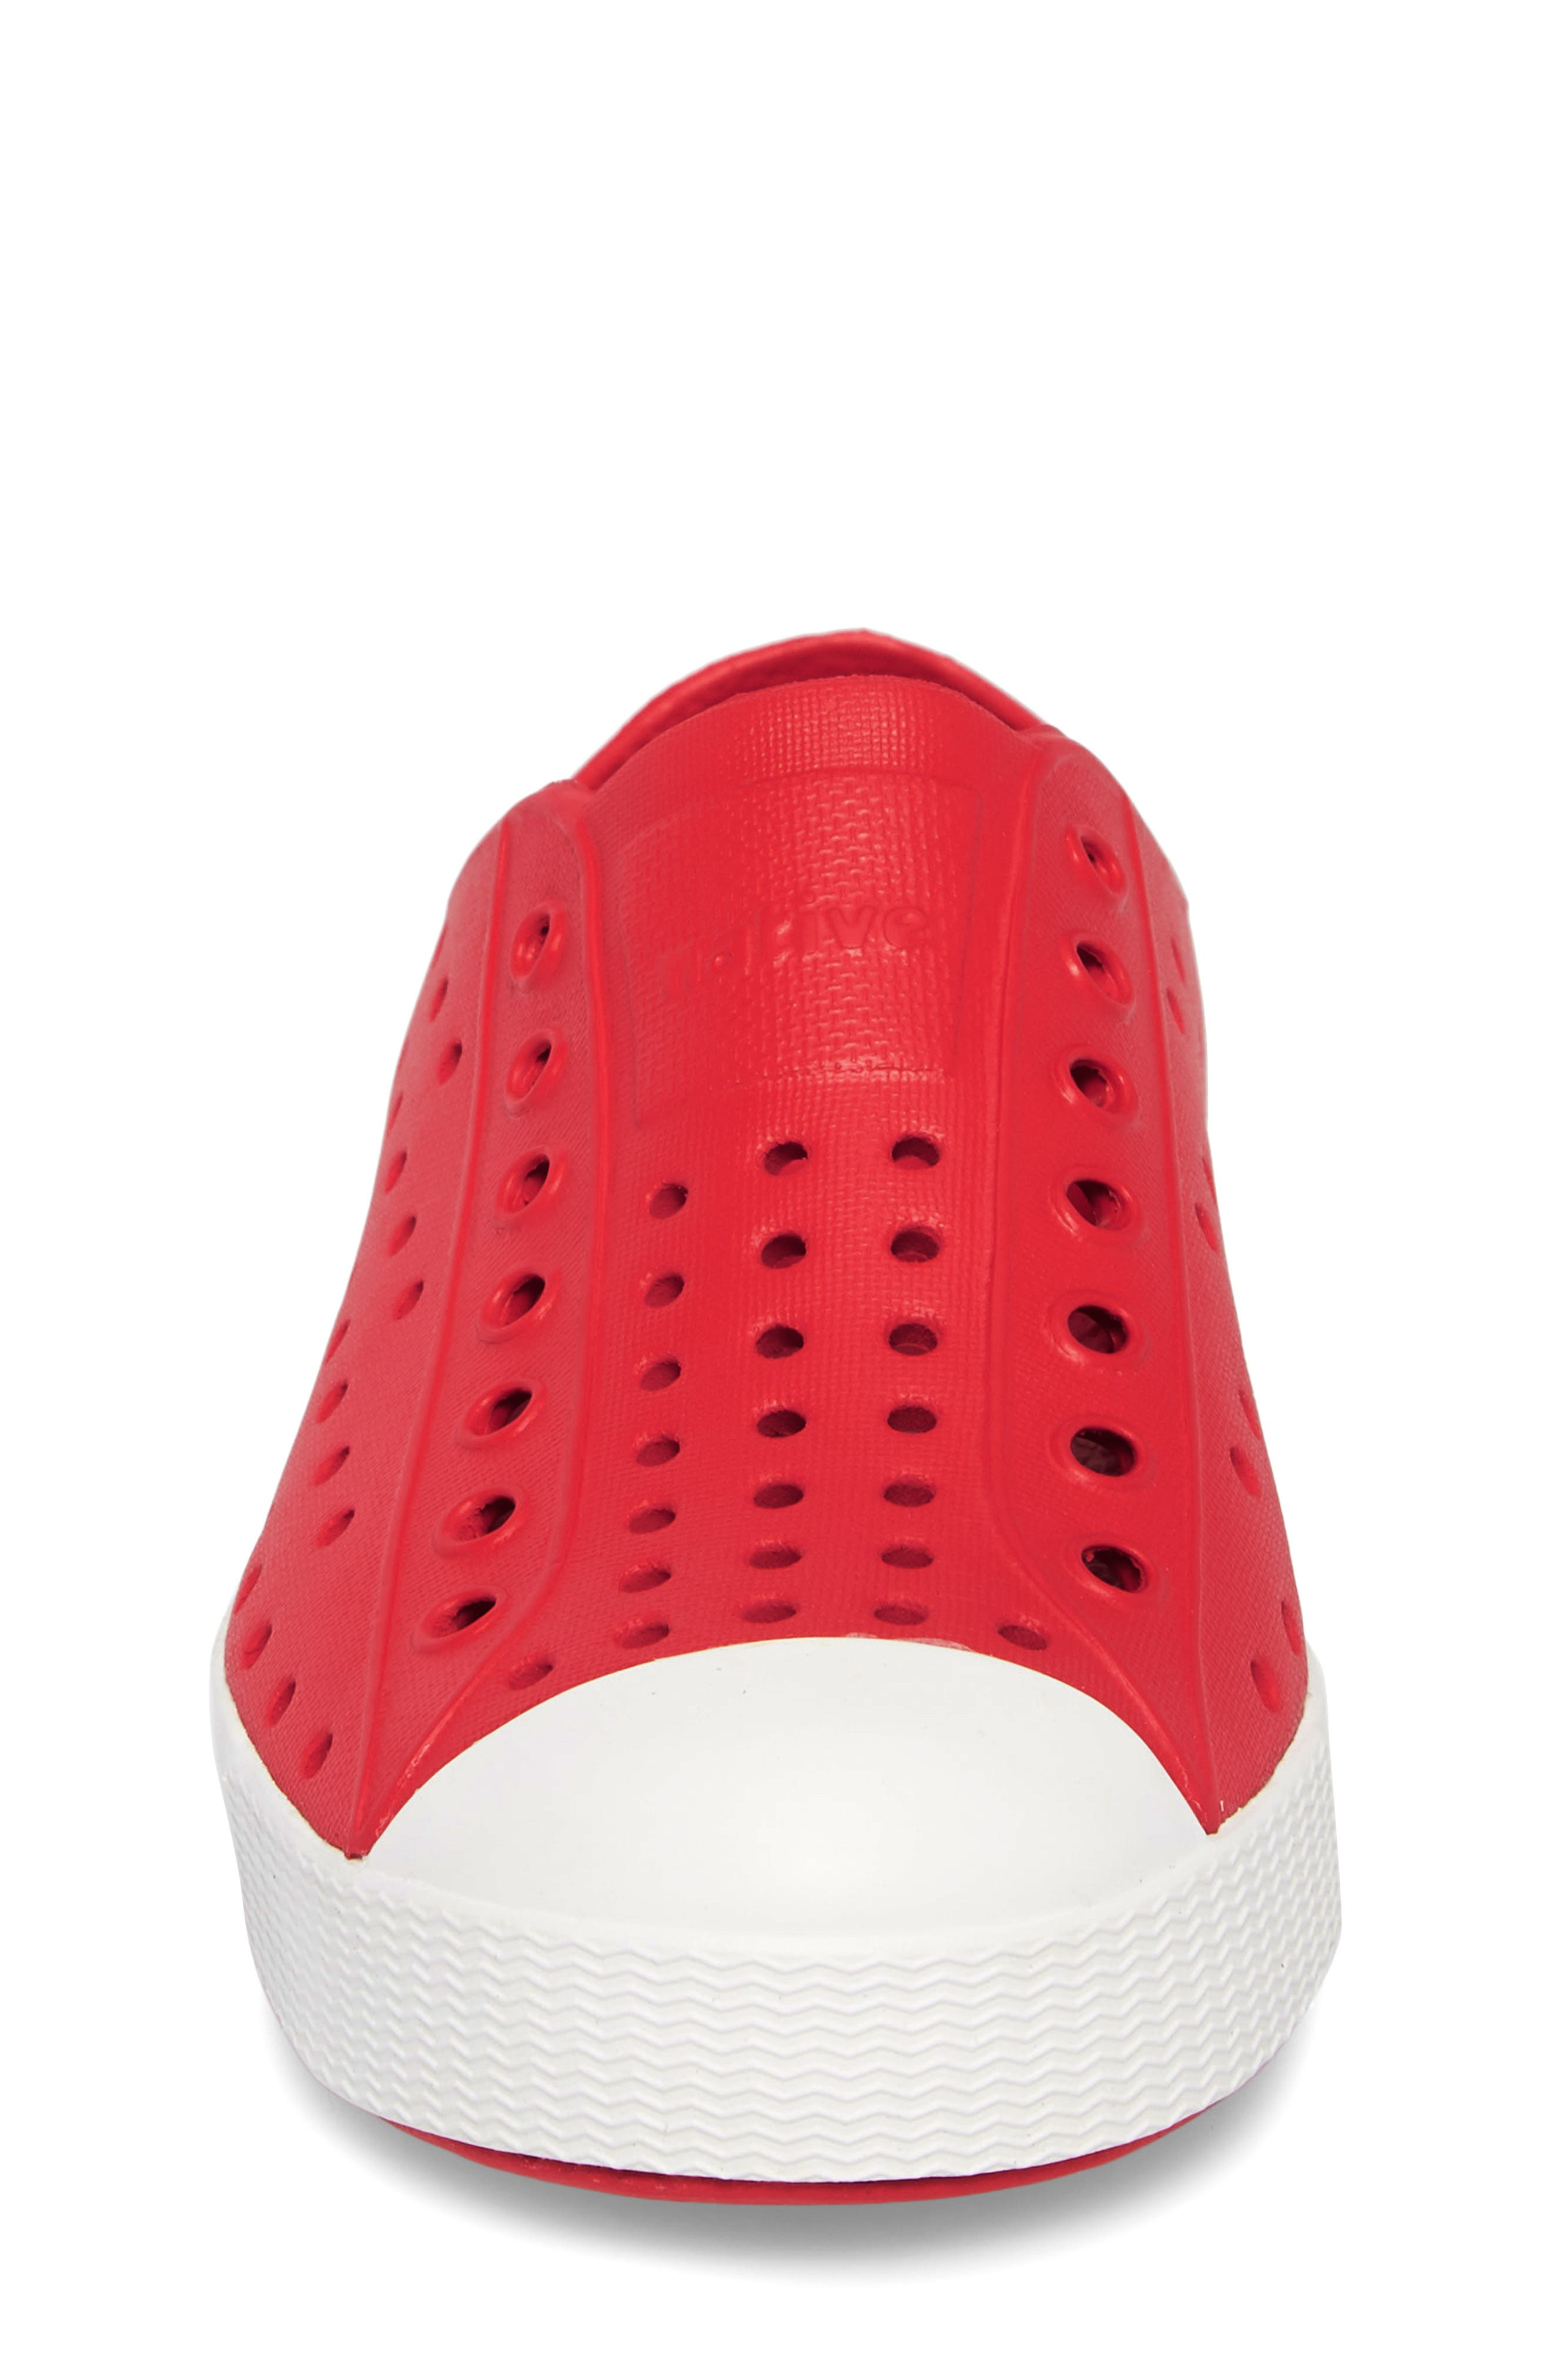 NATIVE SHOES, Jefferson Water Friendly Slip-On Vegan Sneaker, Alternate thumbnail 4, color, TORCH RED/ SHELL WHITE